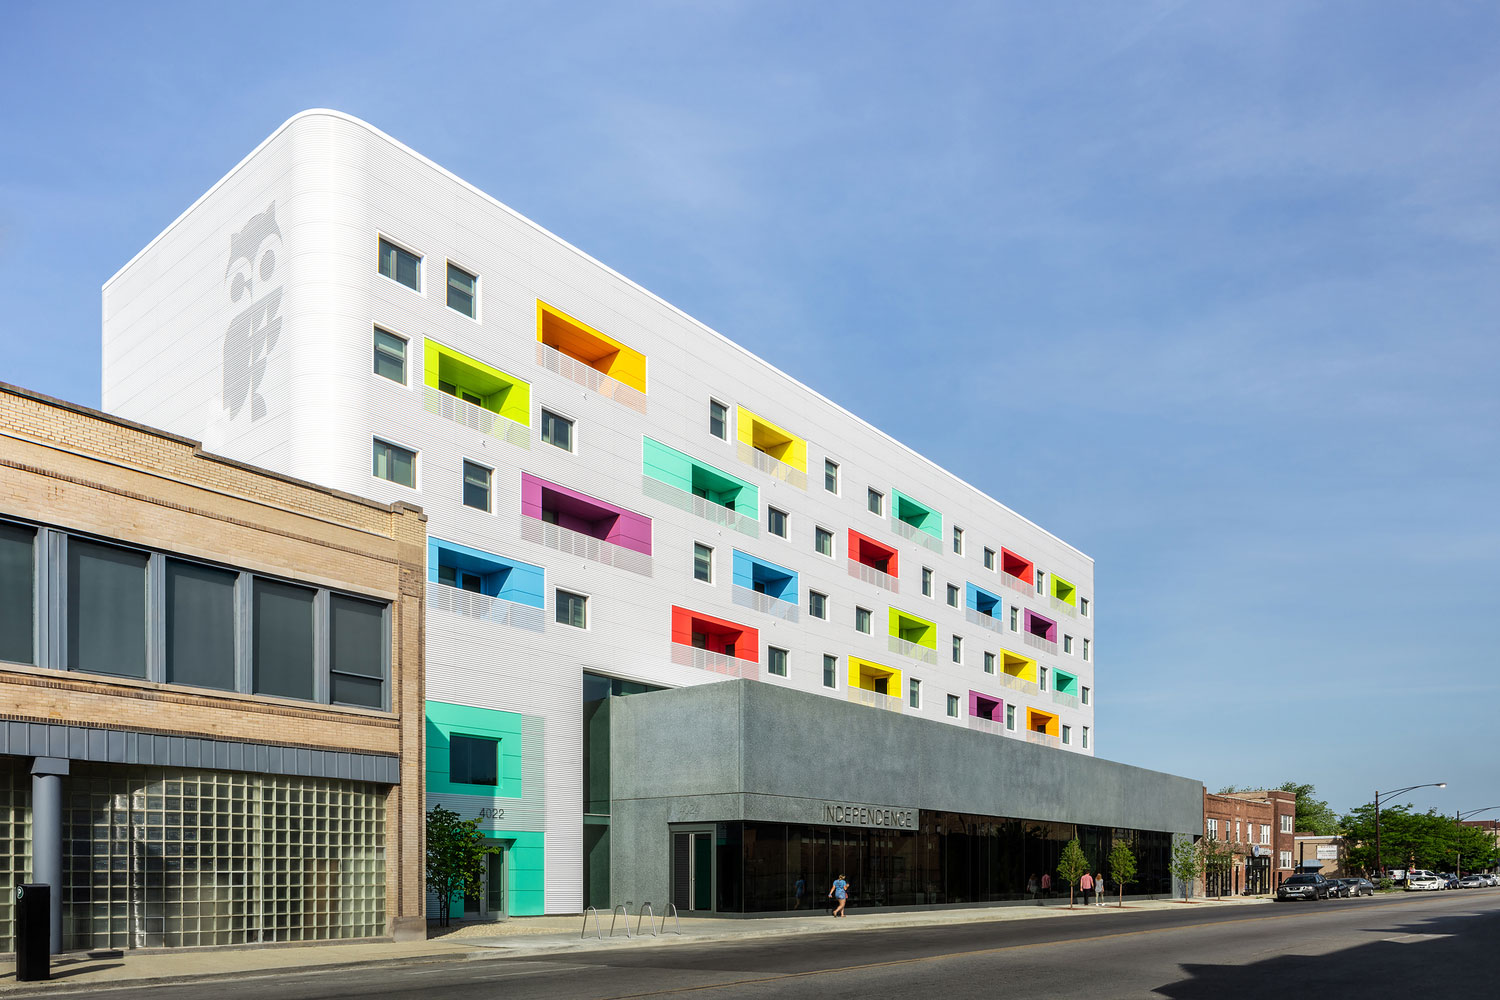 Independence Library and Apartments, John Ronan Architects, James Florio